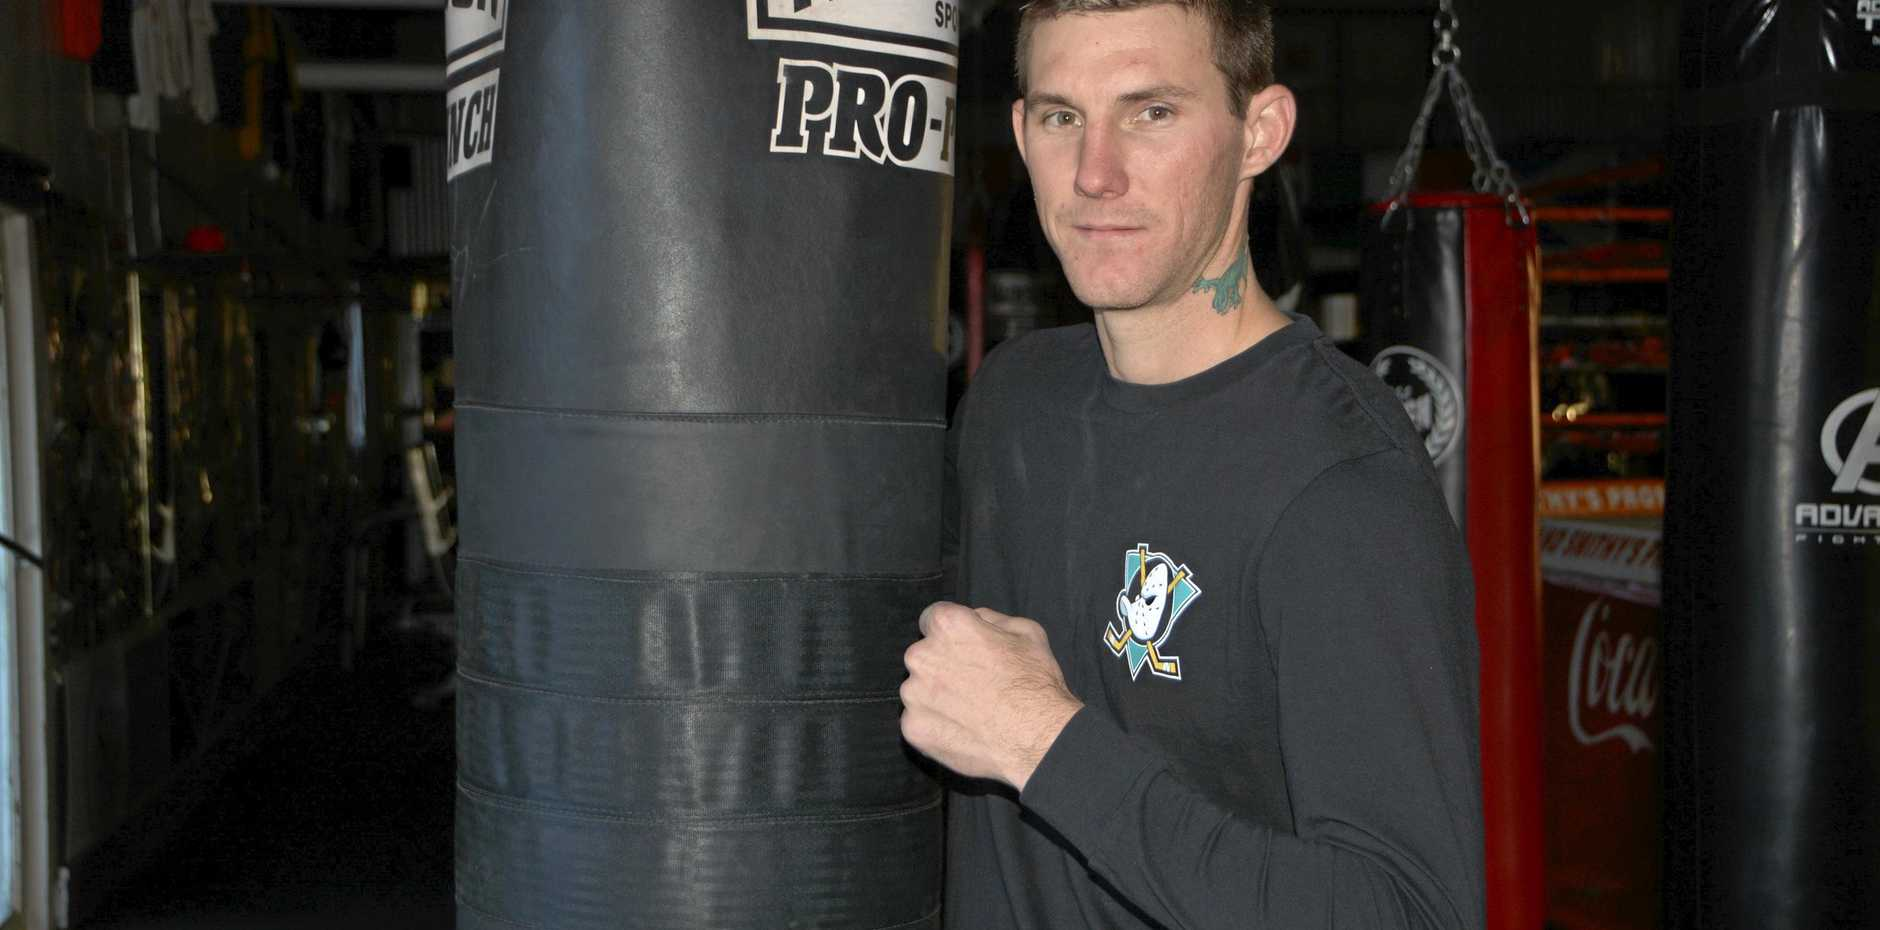 Toowoomba's Brent Moore takes on Matthew Hartmann this weekend for the Queensland middleweight championship.